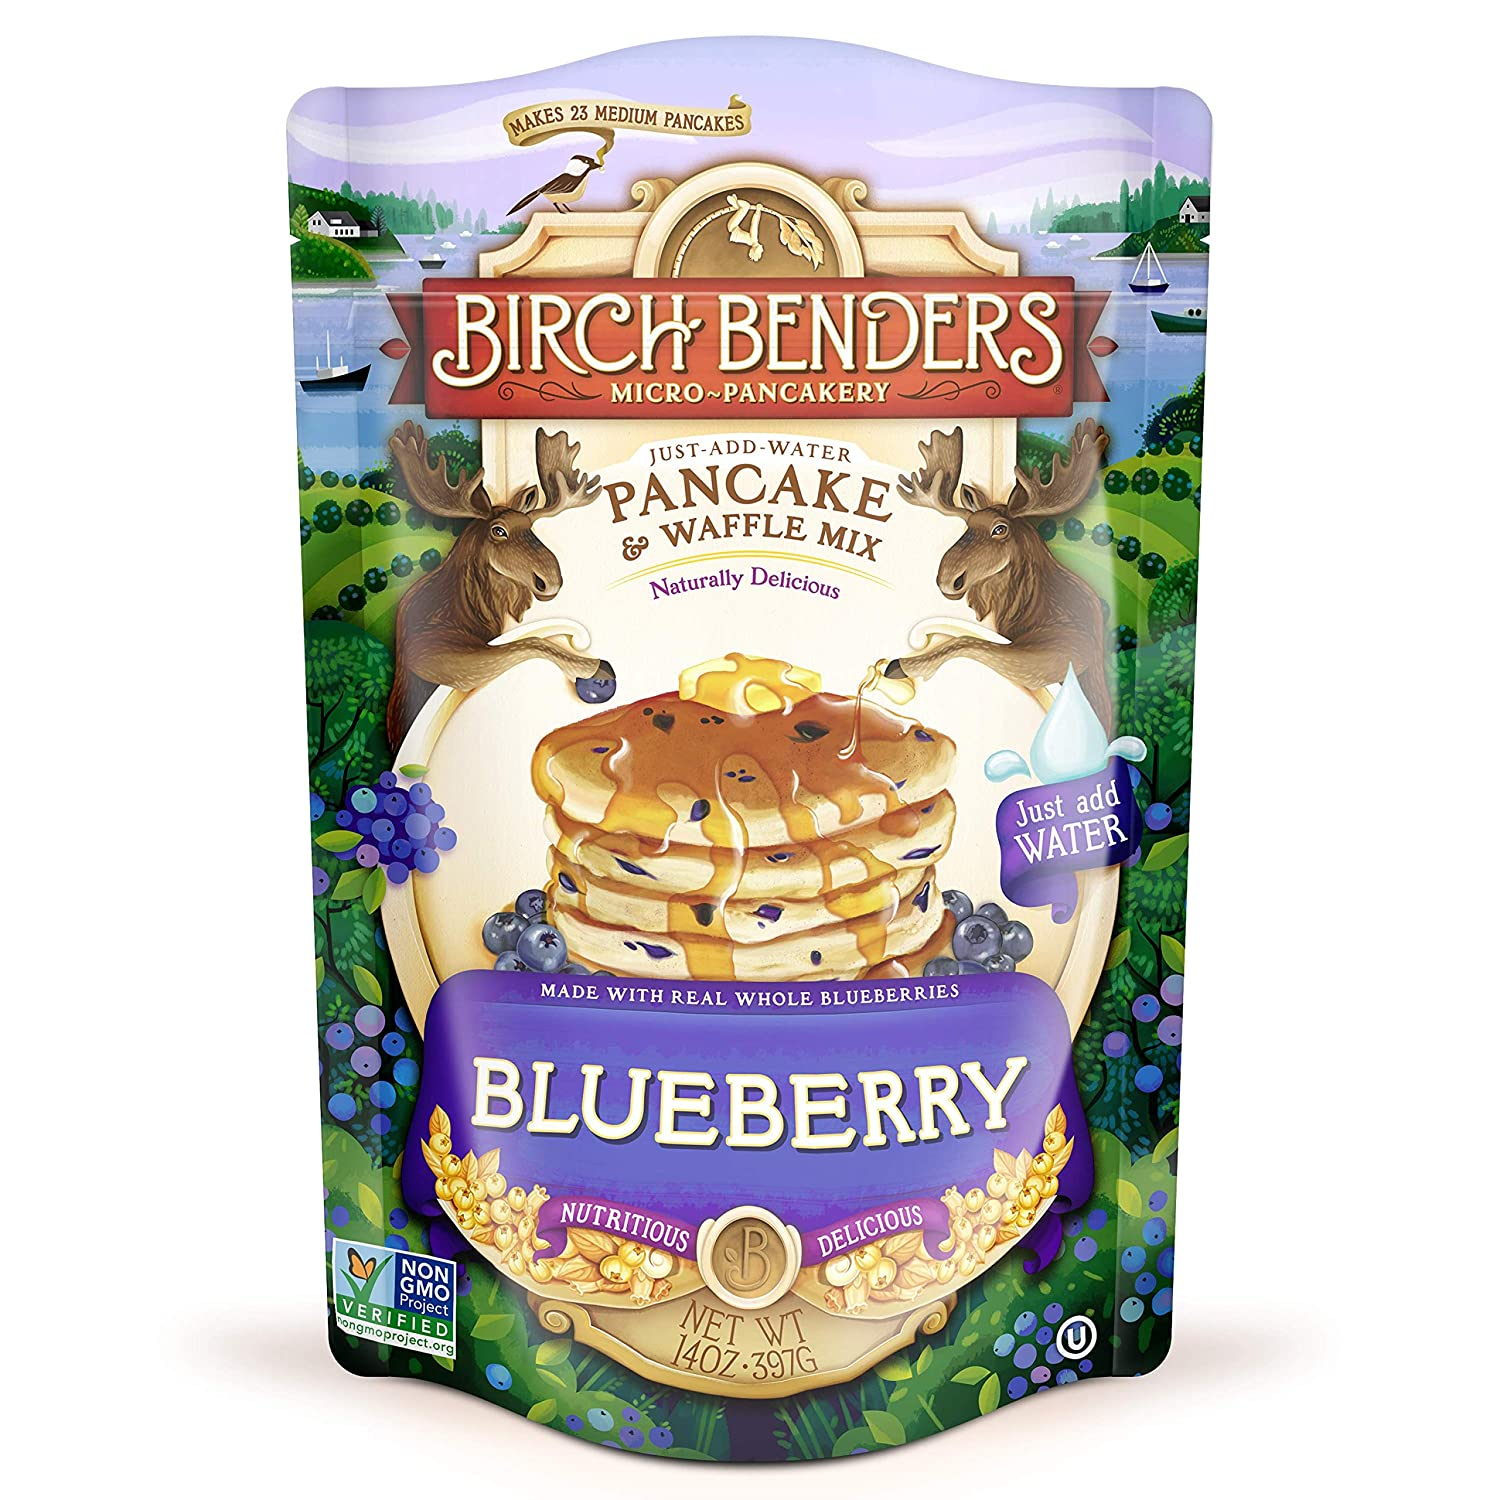 Blueberry Pancake and Waffle Mix by Birch Benders, Made with Real Blueberries, Just Add Water, Non-GMO, Dairy Free, Just Add Water, 14 Ounce, 1 Pack